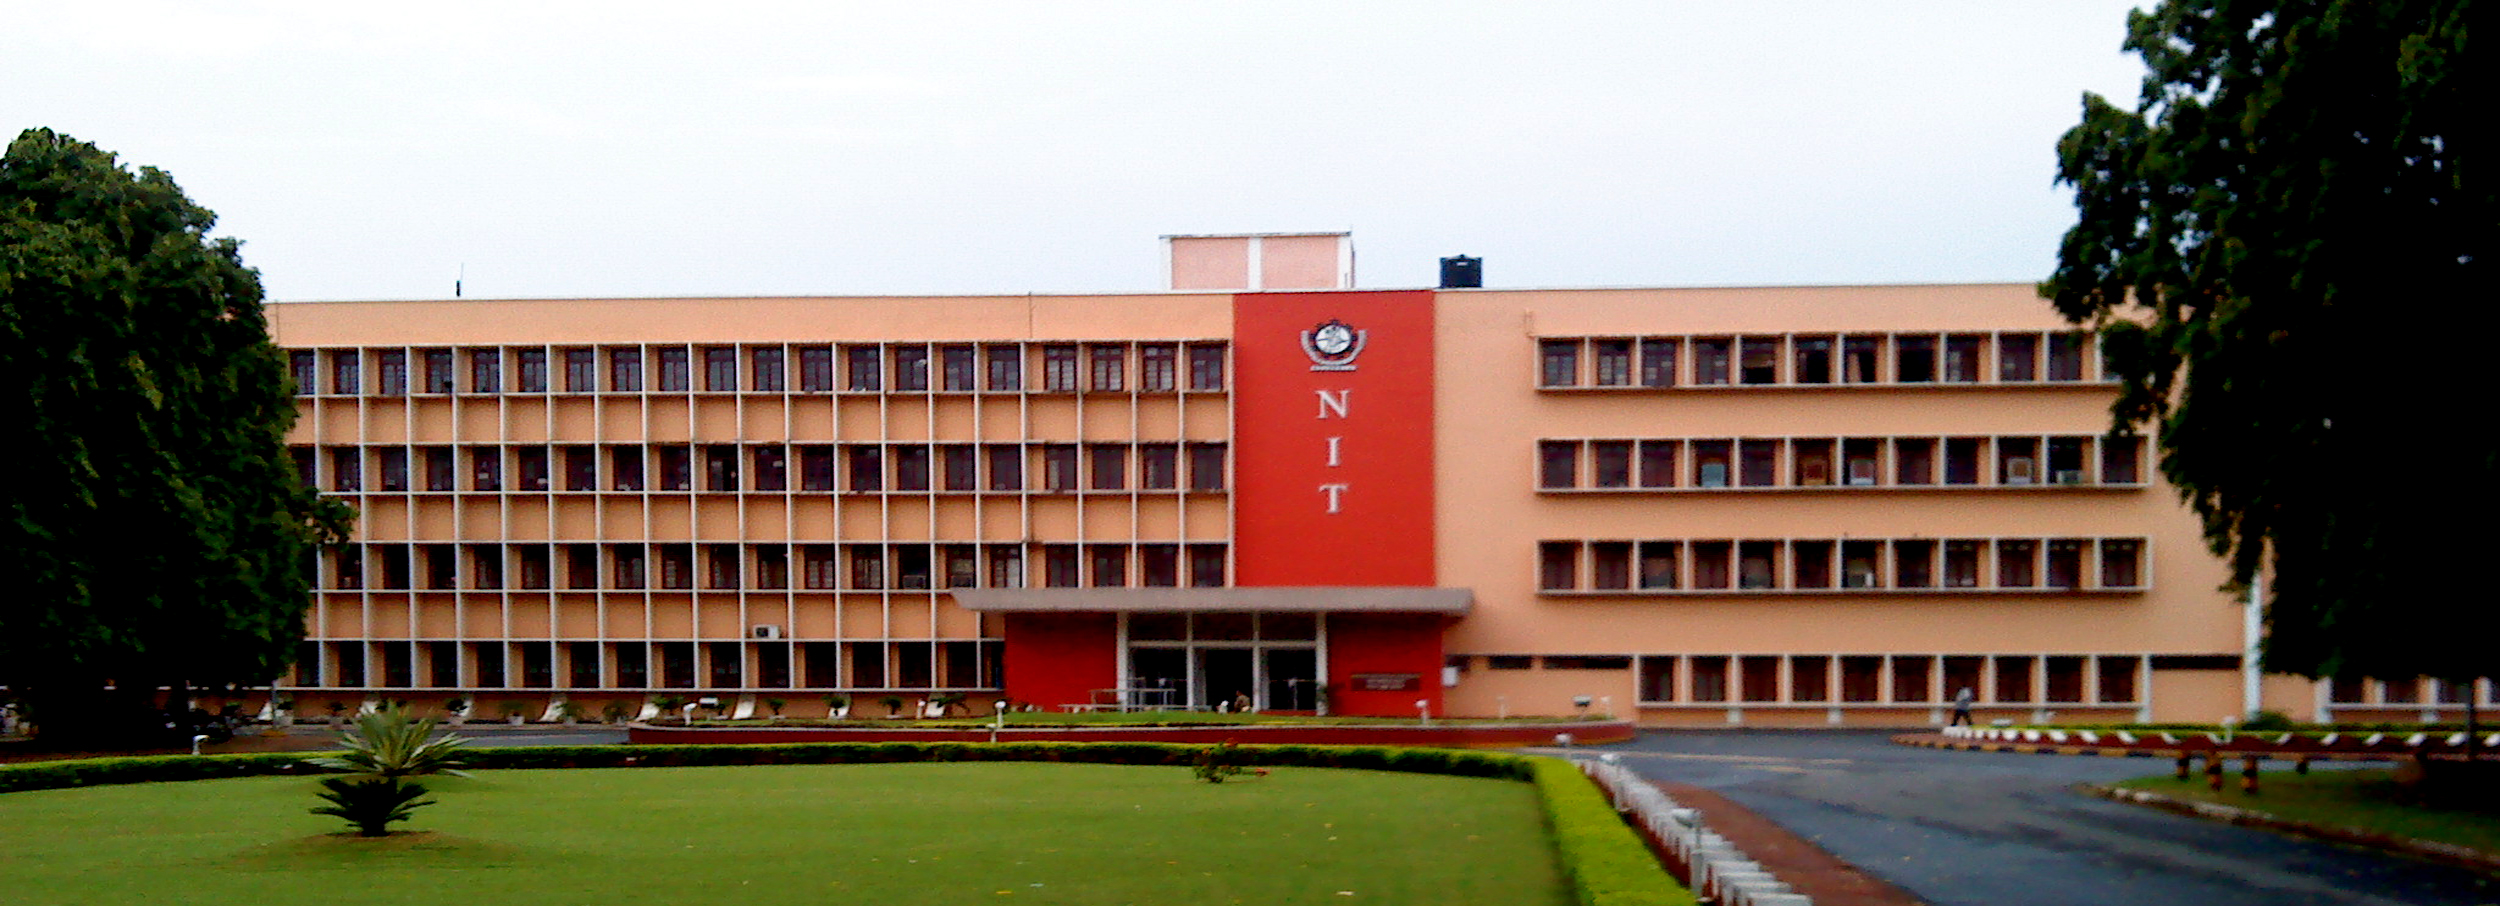 NIT Rourkela: Cut Off, Placements, Fees, Ranking, Admission 2020